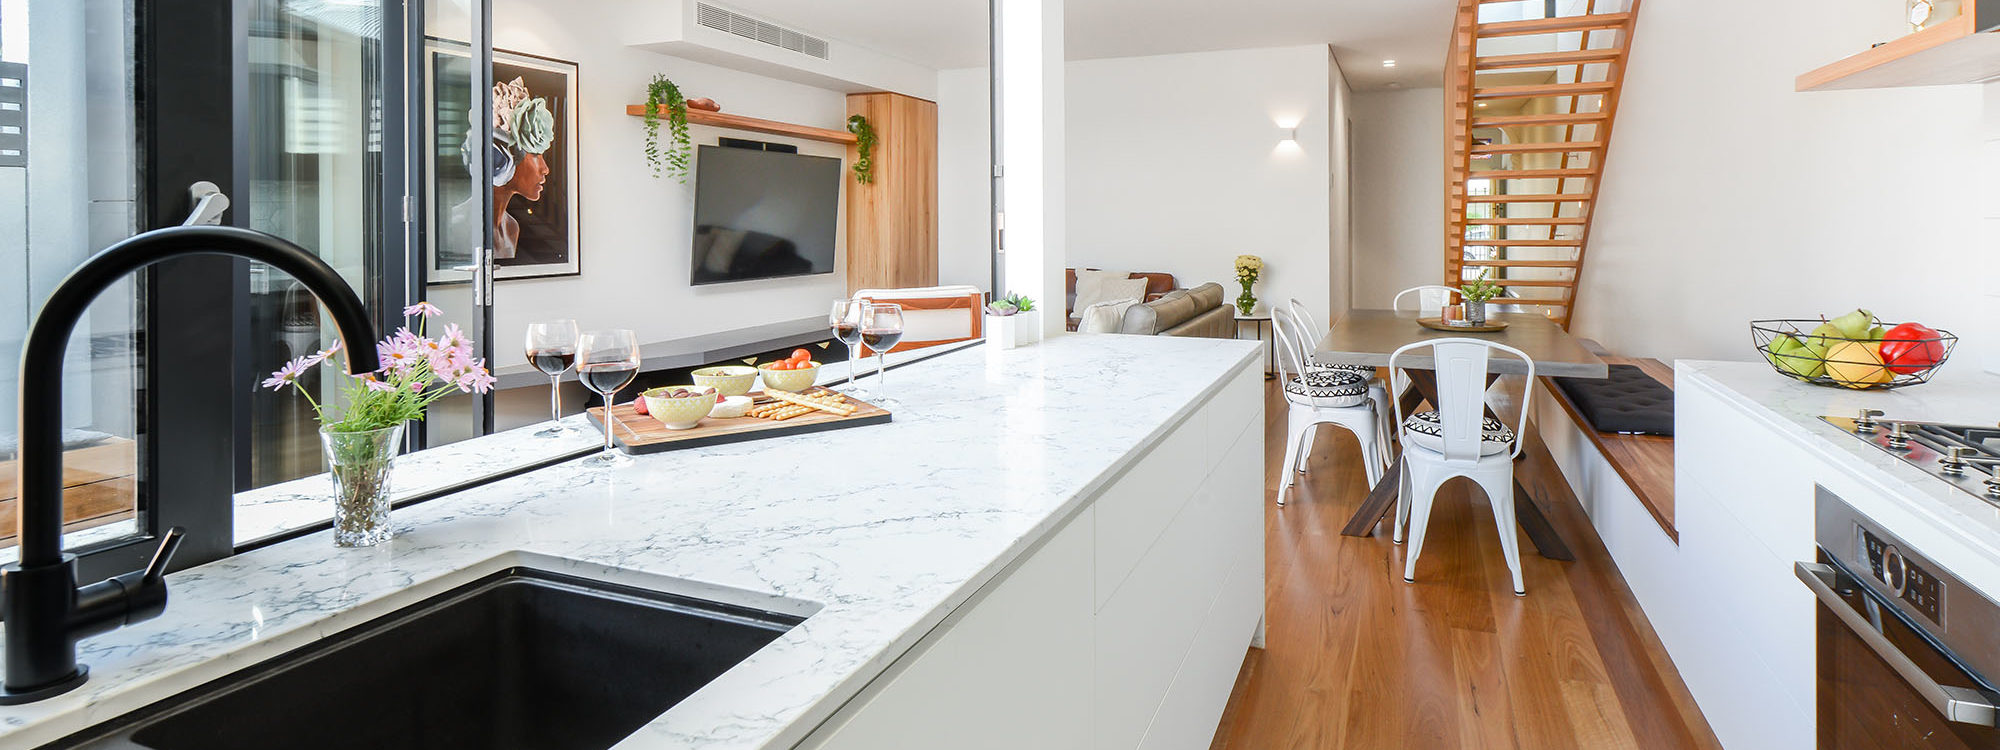 Gigis Place - South Melbourne - Kitchen to Dining Area